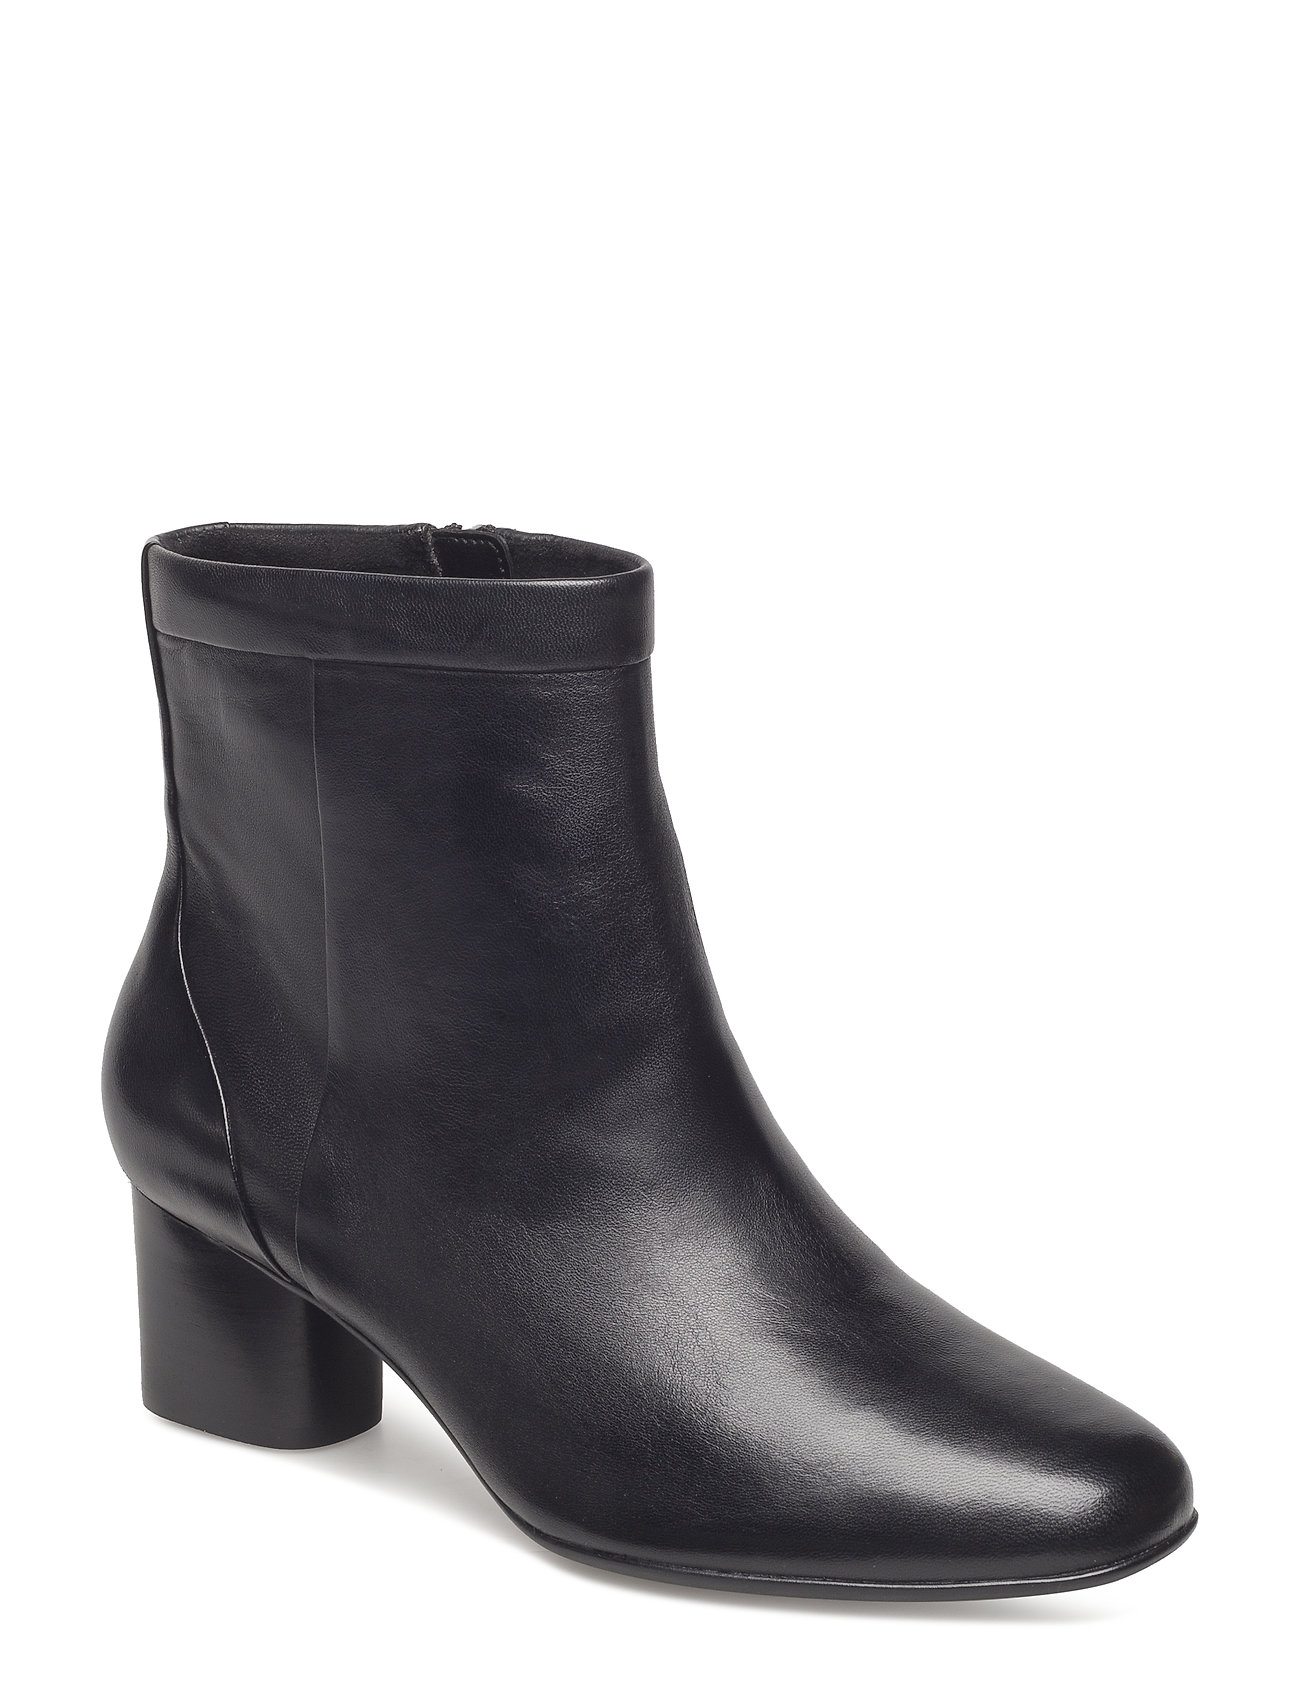 CLARKS Un Cosmo Up Shoes Boots Ankle Boots Ankle Boots With Heel Schwarz CLARKS